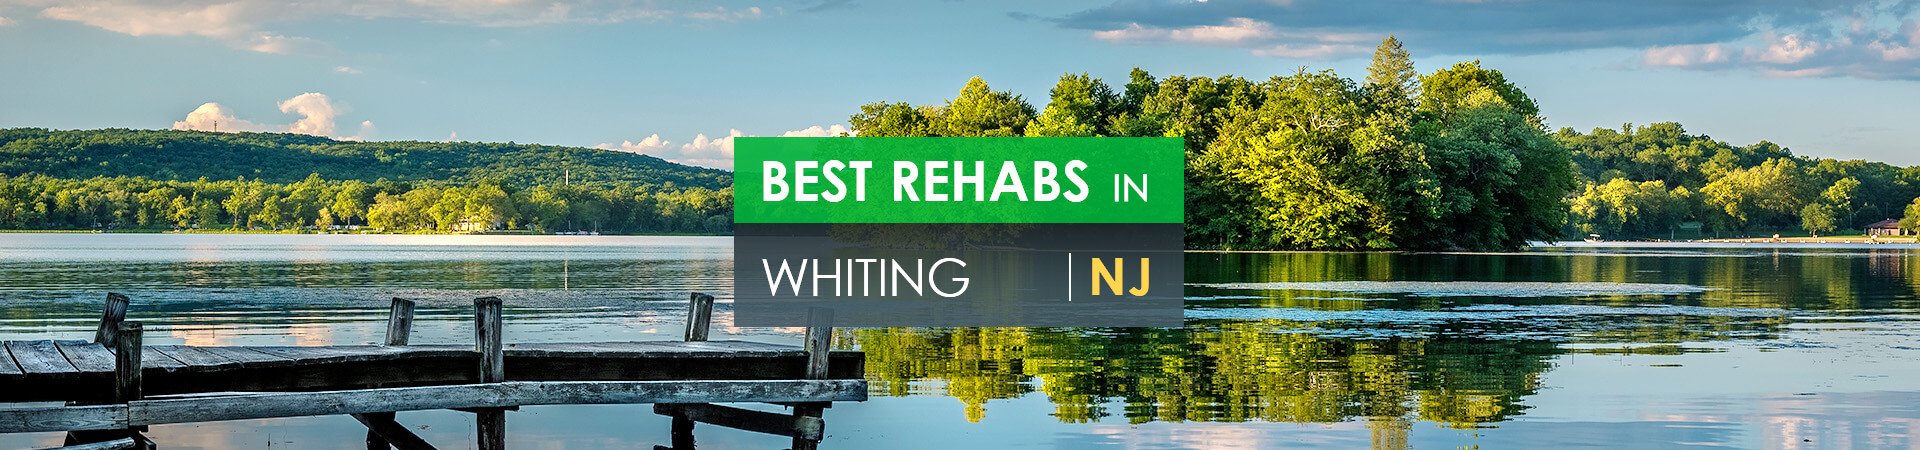 Best rehabs in Whiting, NJ